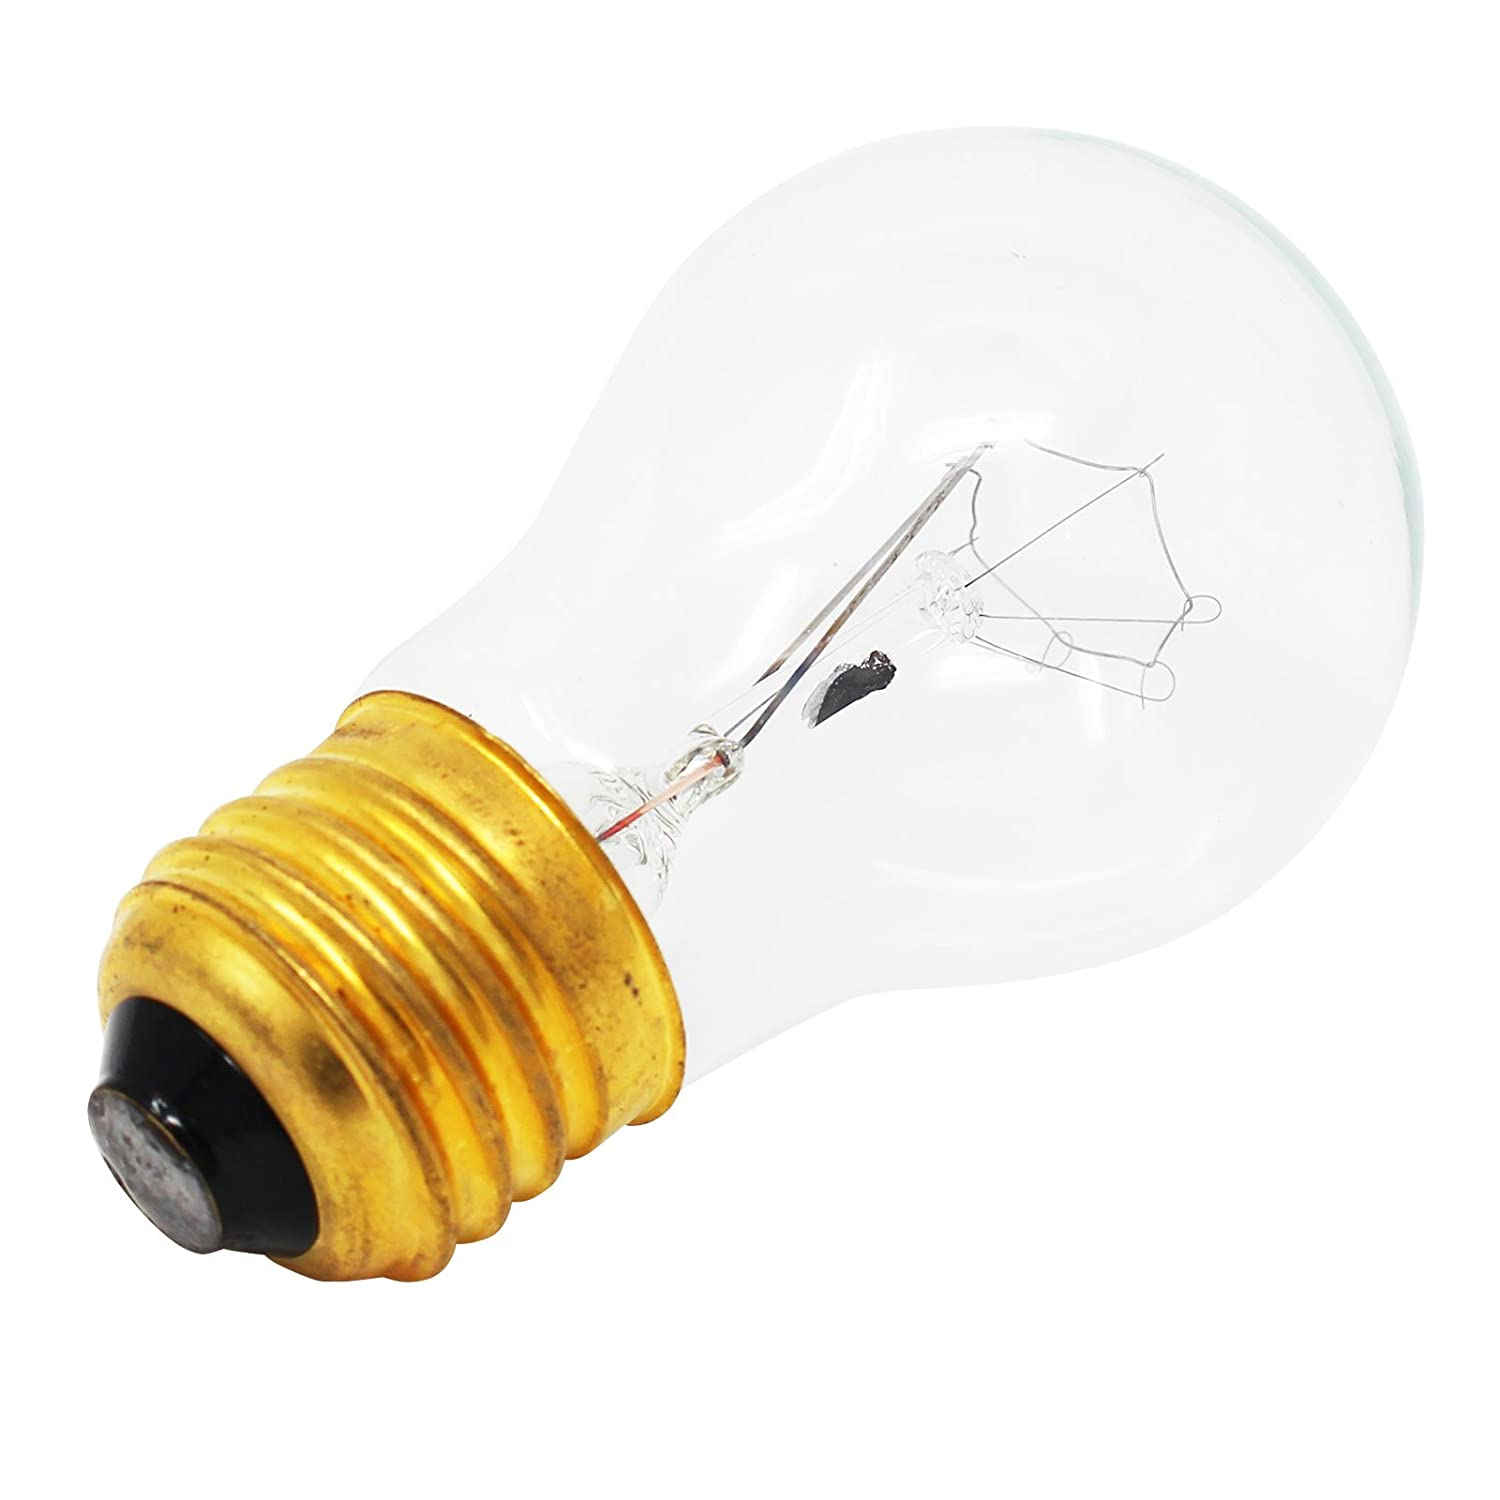 Replacement Light Bulb for KitchenAid KSRS25FTMS01 - Compatible KitchenAid 8009 Light Bulb